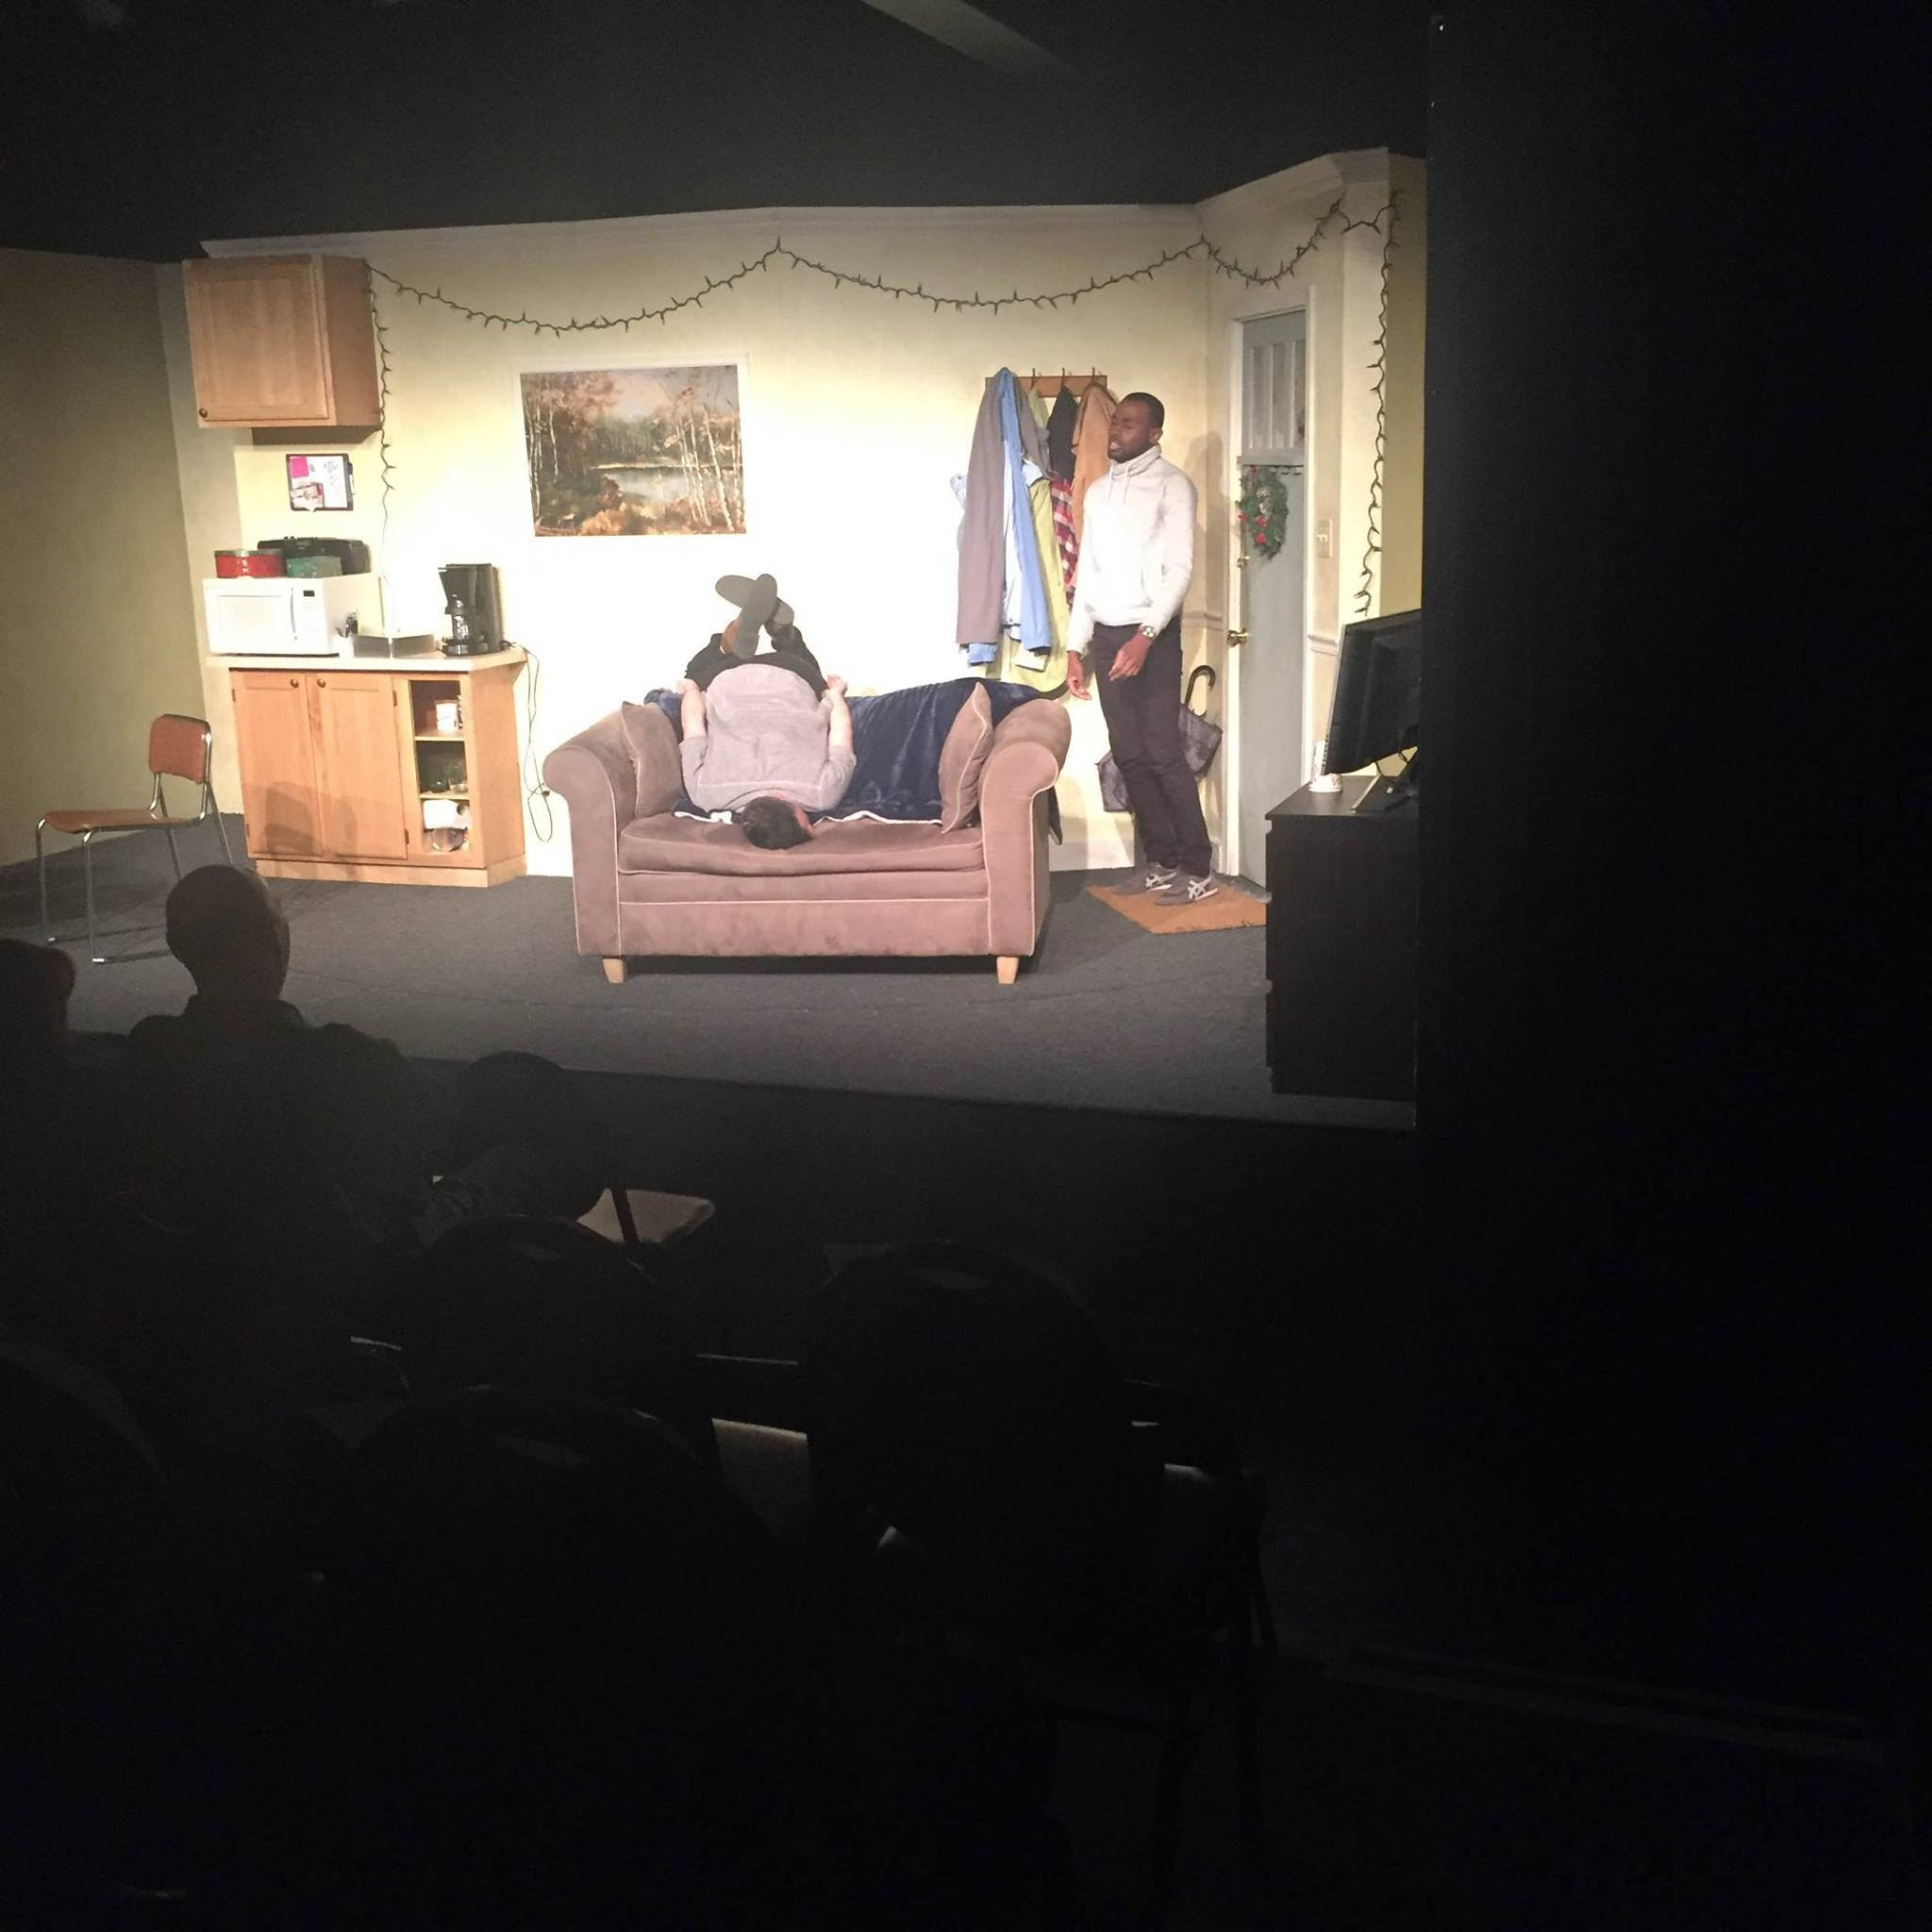 John Schultz and Gavin Whitt improvise on the set of  Lost Girls  at Theatre exile.